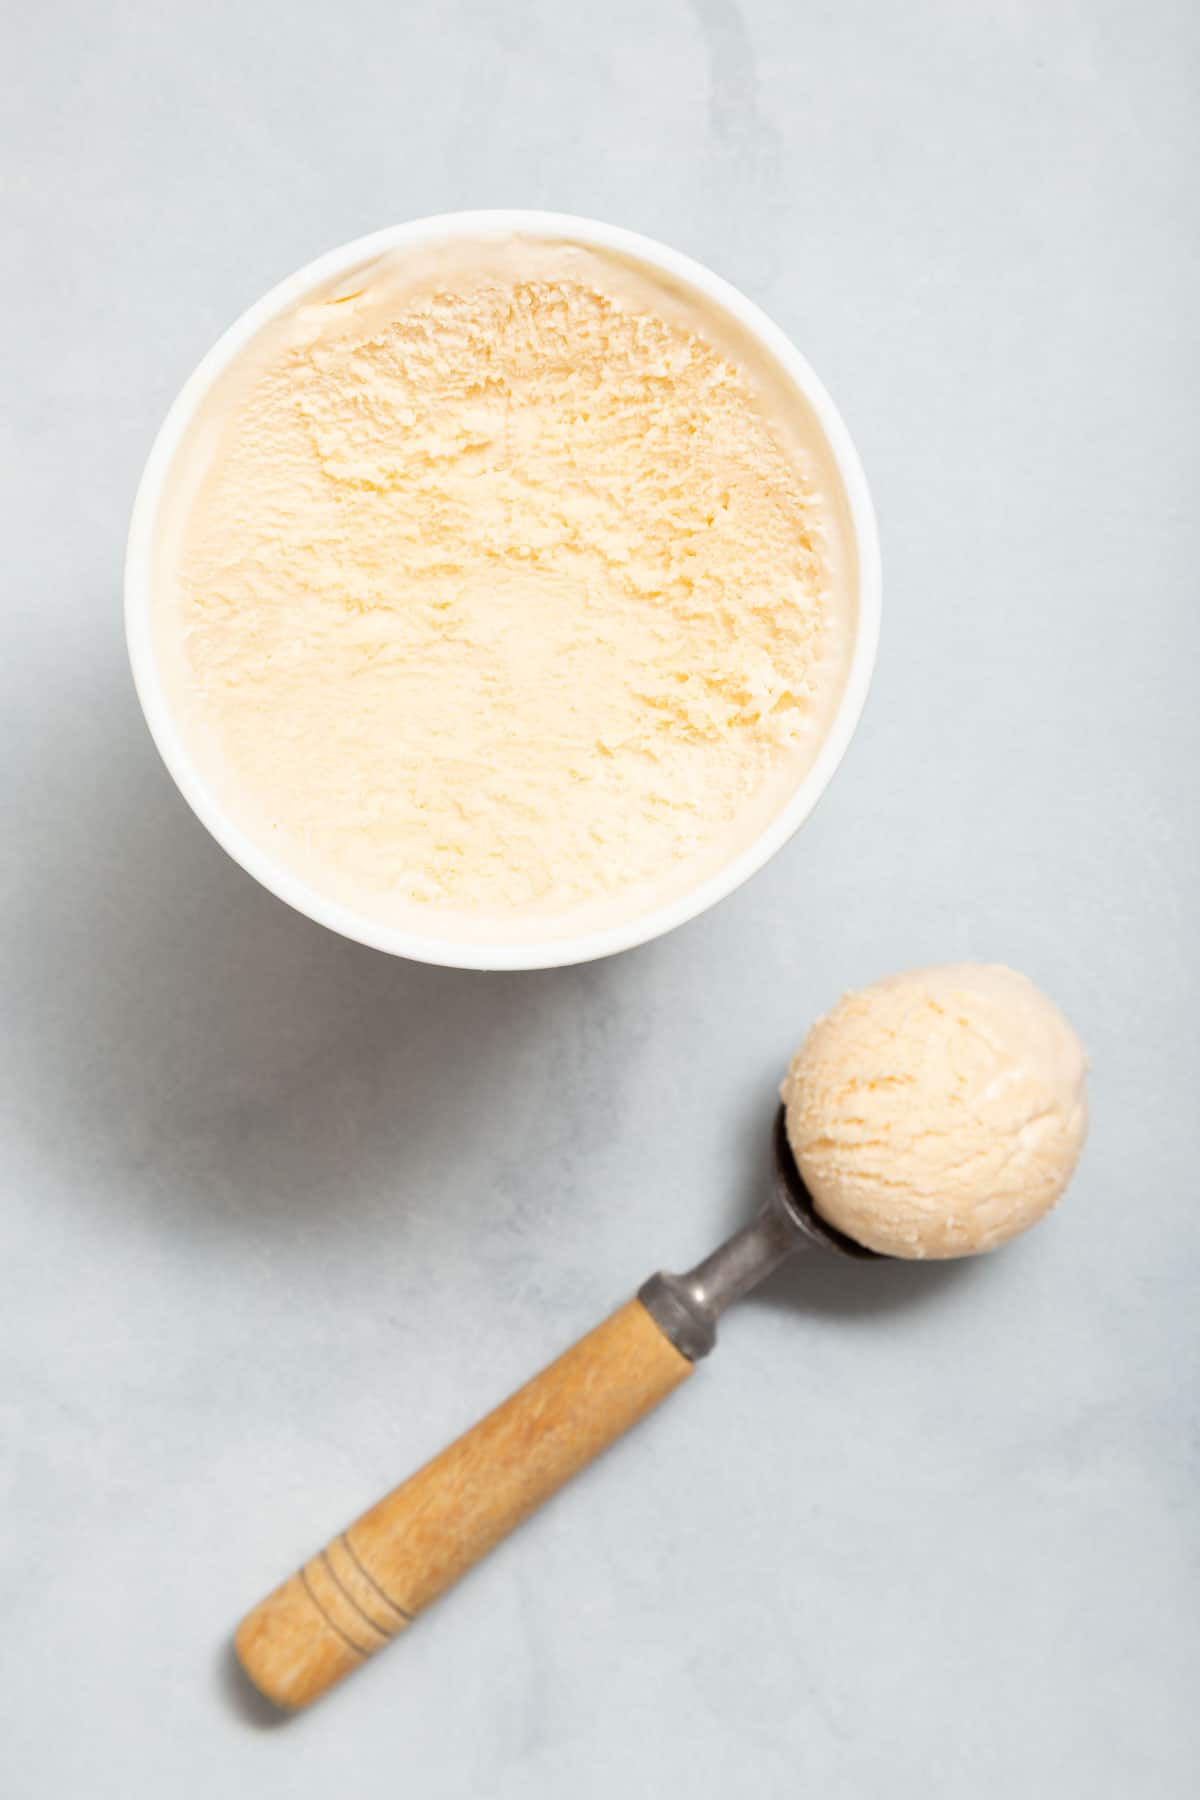 White ice cream in a container with an ice cream scoop on the side